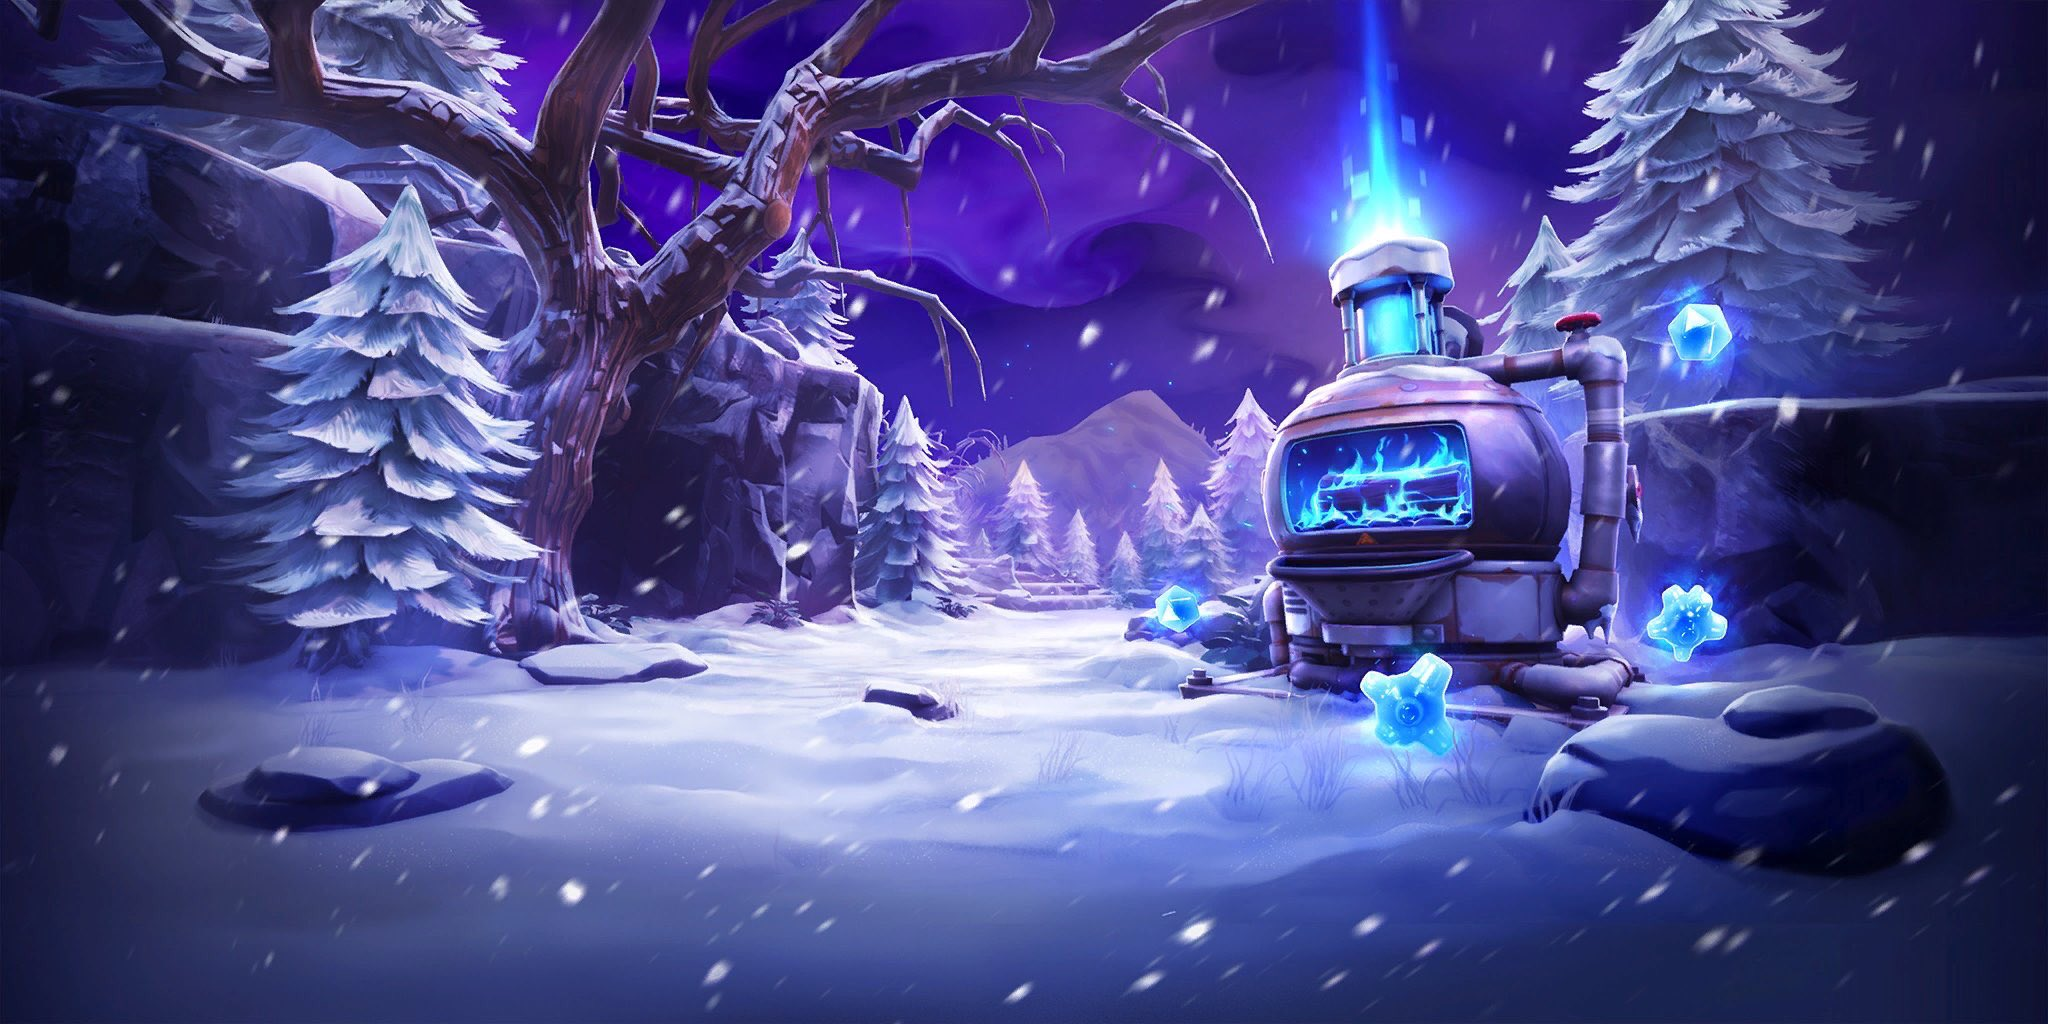 Fortnite Endless Winter Loading Screen Leaked